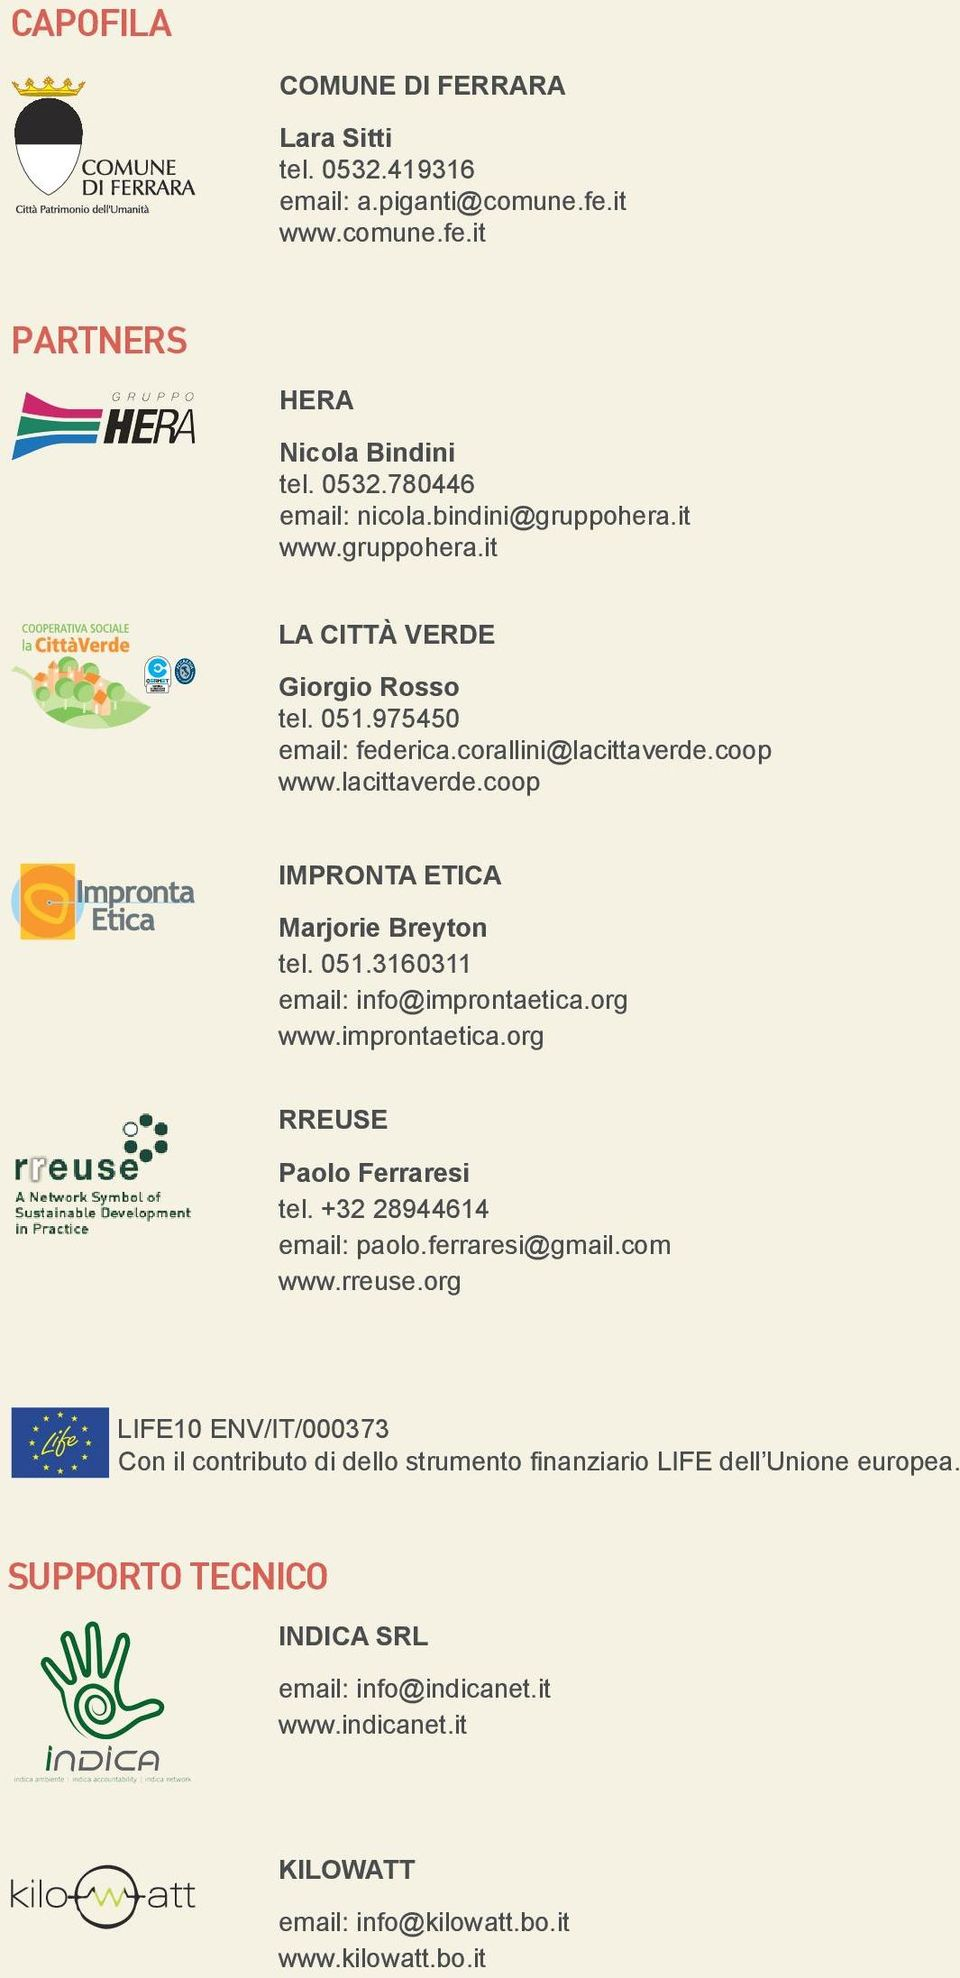 org www.improntaetica.org RREUSE Paolo Ferraresi tel. +32 28944614 email: paolo.ferraresi@gmail.com www.rreuse.